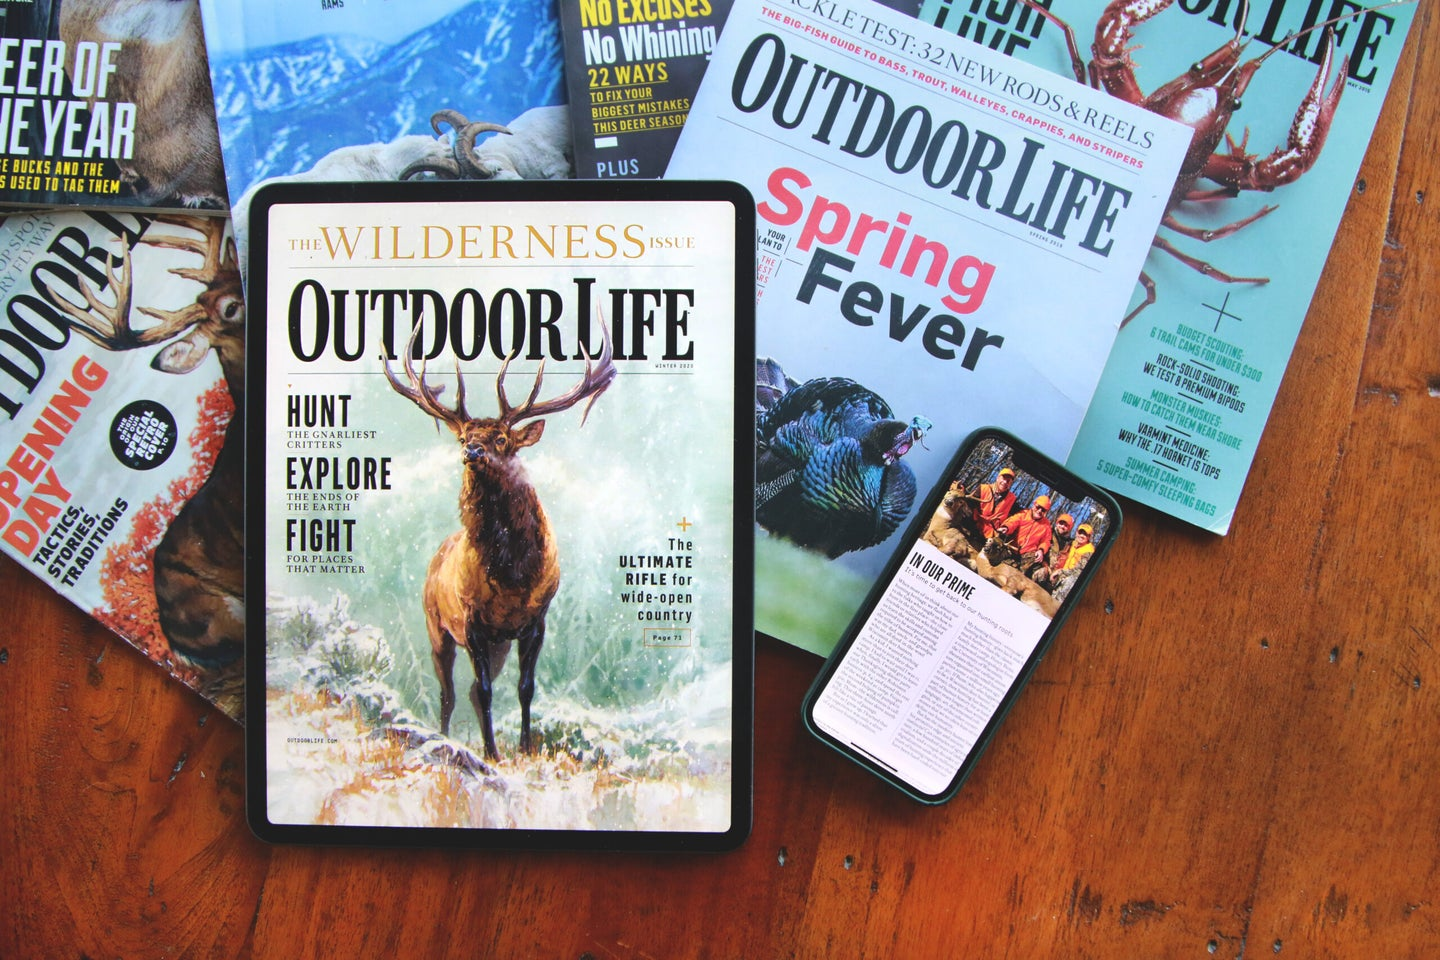 Outdoor Life digital editions on tablet and mobile.